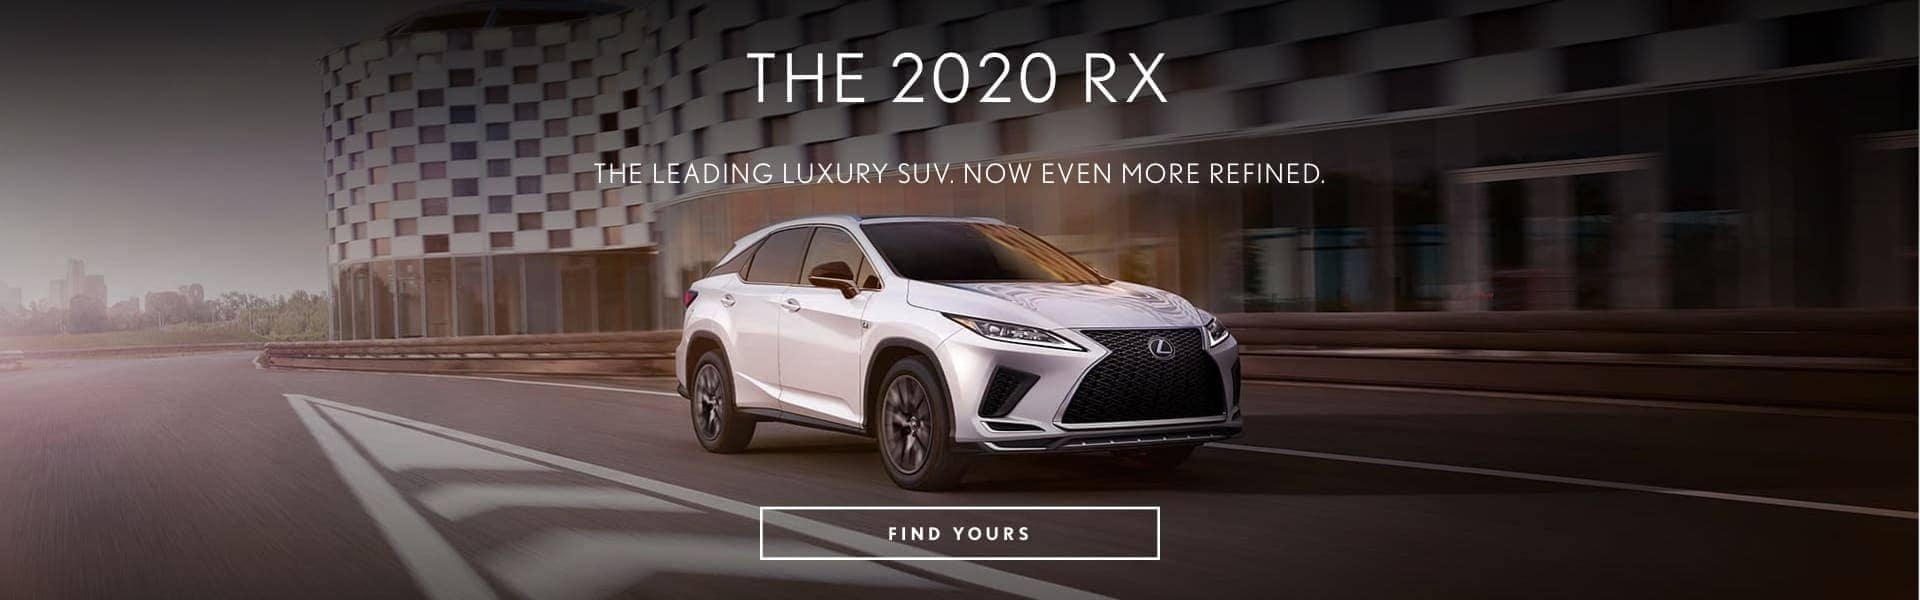 The 2020 RX